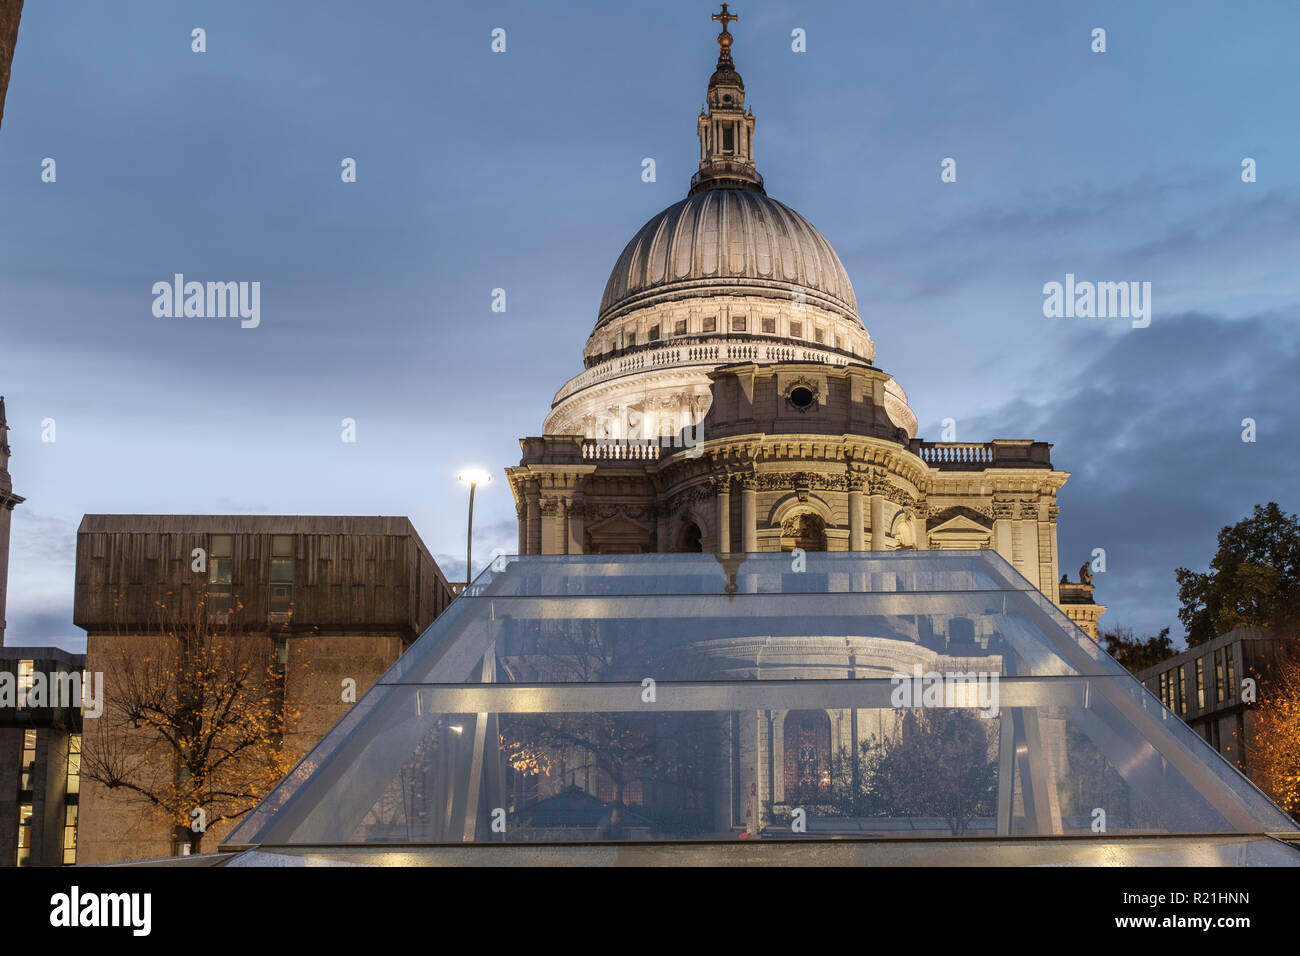 England,London,One New Change - Saint Paul's Cathedral  on a rainy building - Stock Image